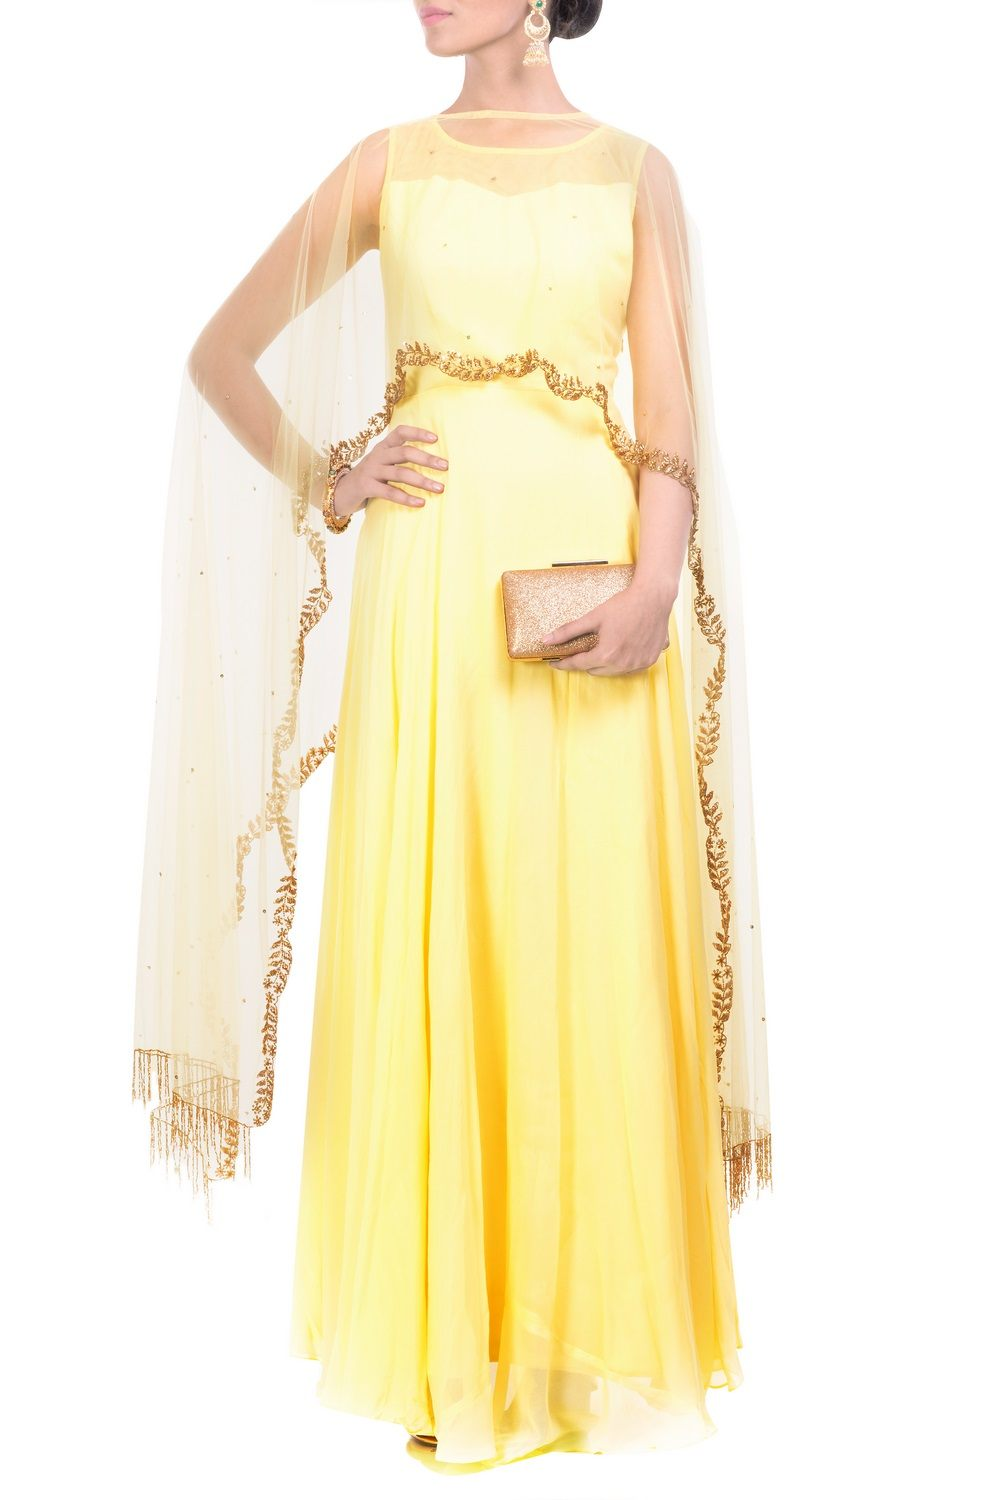 9 sangeet outfits for the bride